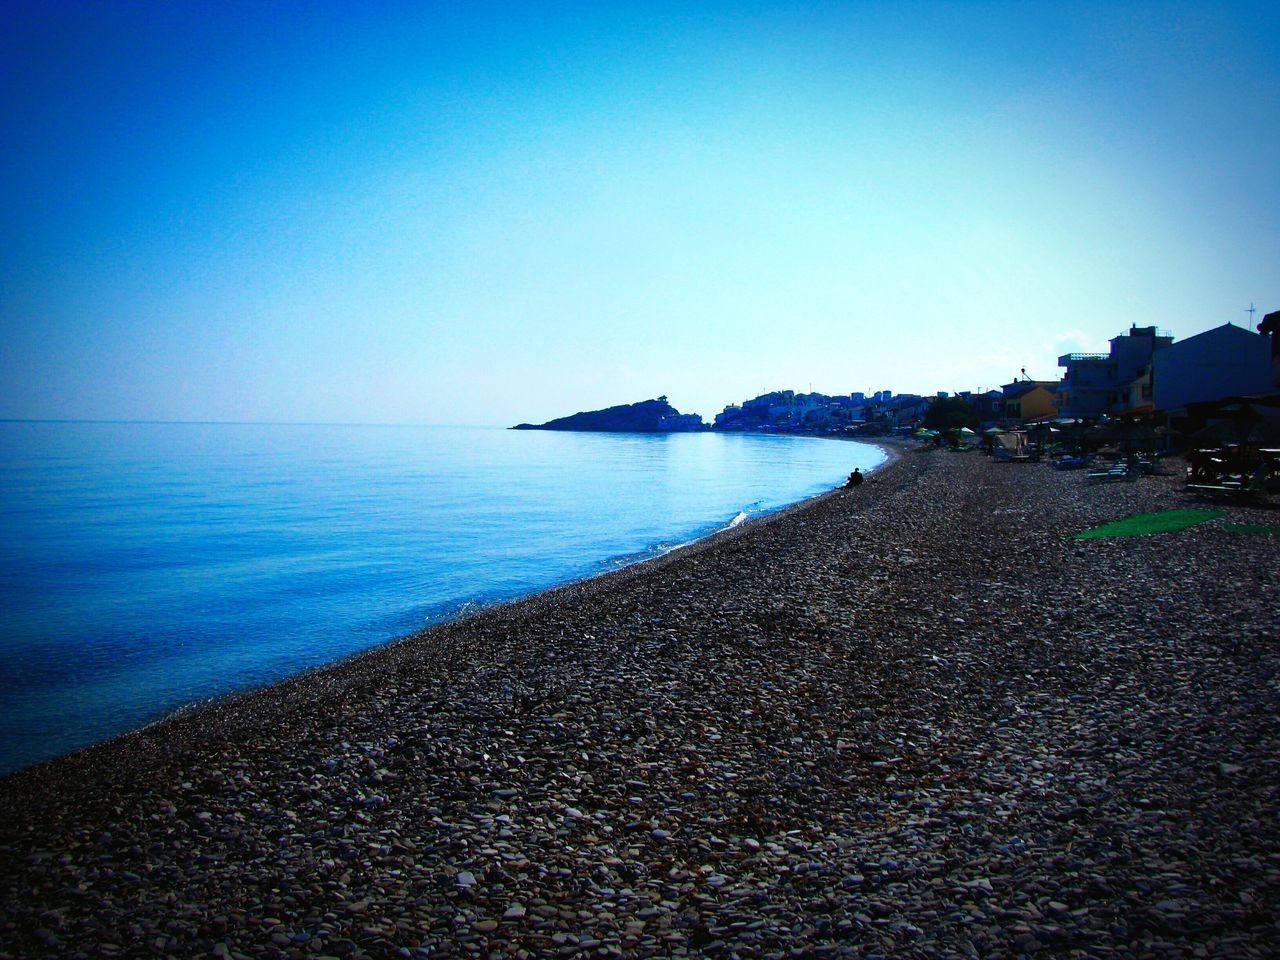 Stones & Water Beach Life Is A Beach Morning Light Pebble Beach Shades Of Blue Deep Blue Endless Blue The Best From Holiday POV A Moment Of Zen... Tranquility Greek Islands Blue Wave Village Seeing The Sights Splash Landscapes With WhiteWall Summer Dreams Crystal Clear Waters Beach Photography Wish You Were Here Kokari Beach Samos Island Summer Memories 🌄